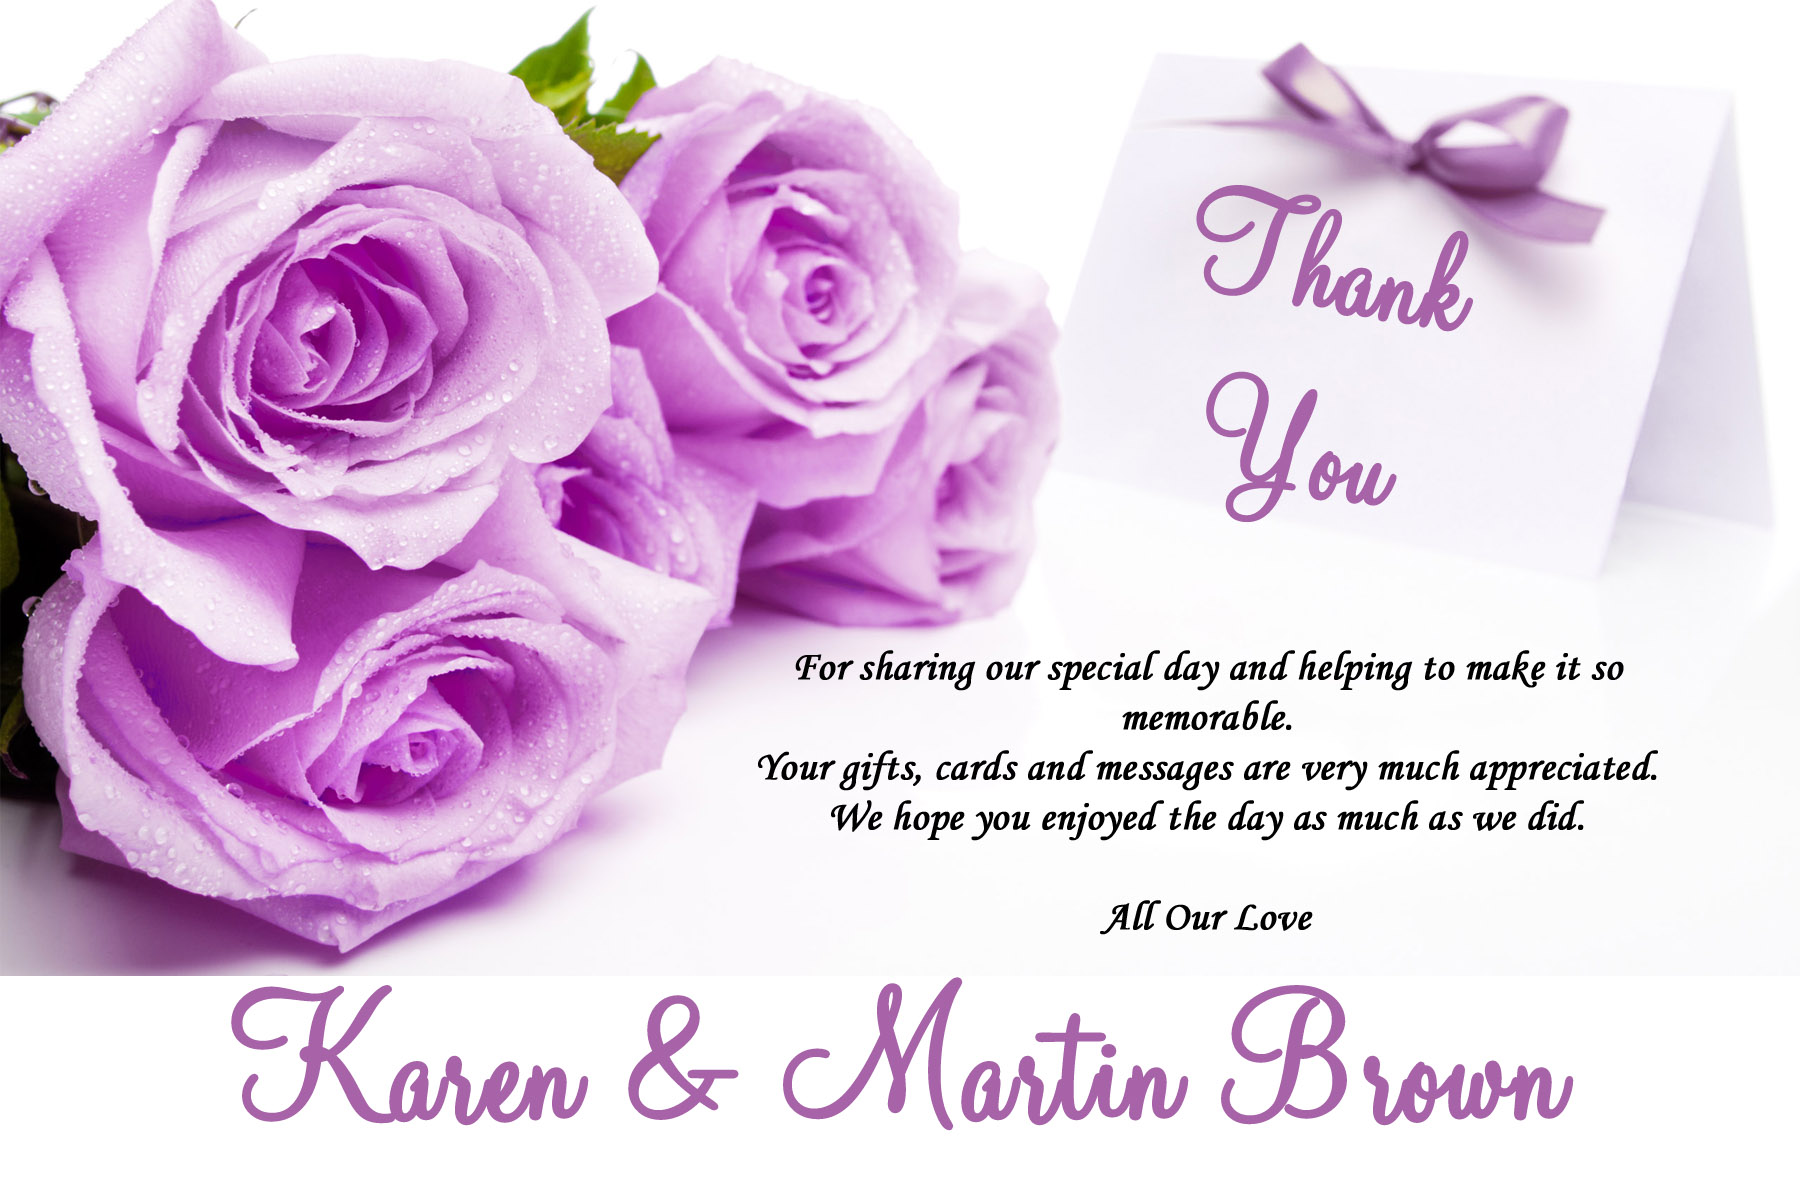 Thank You Letter For Baby Gift Sample Gifts – Wedding Thank You Card Sample